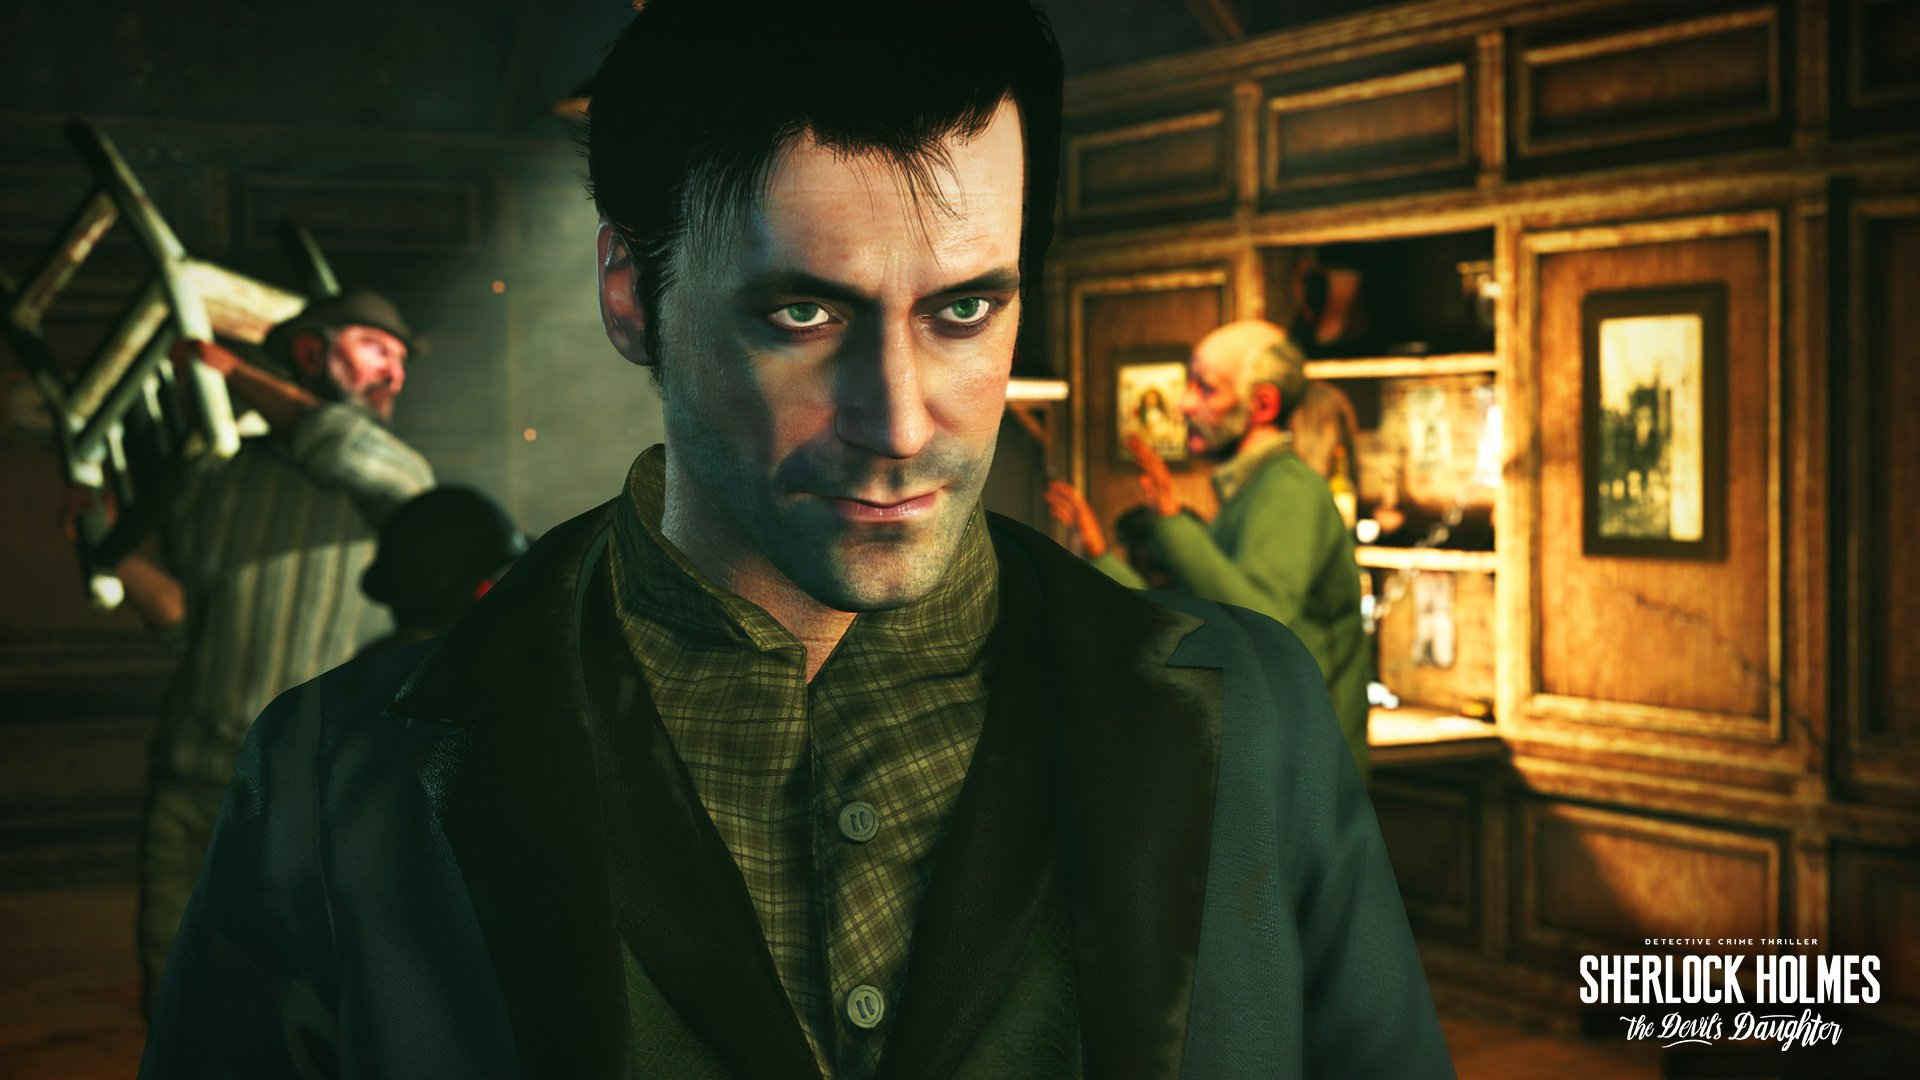 Interview: Solving Mysteries with Sherlock Holmes ...